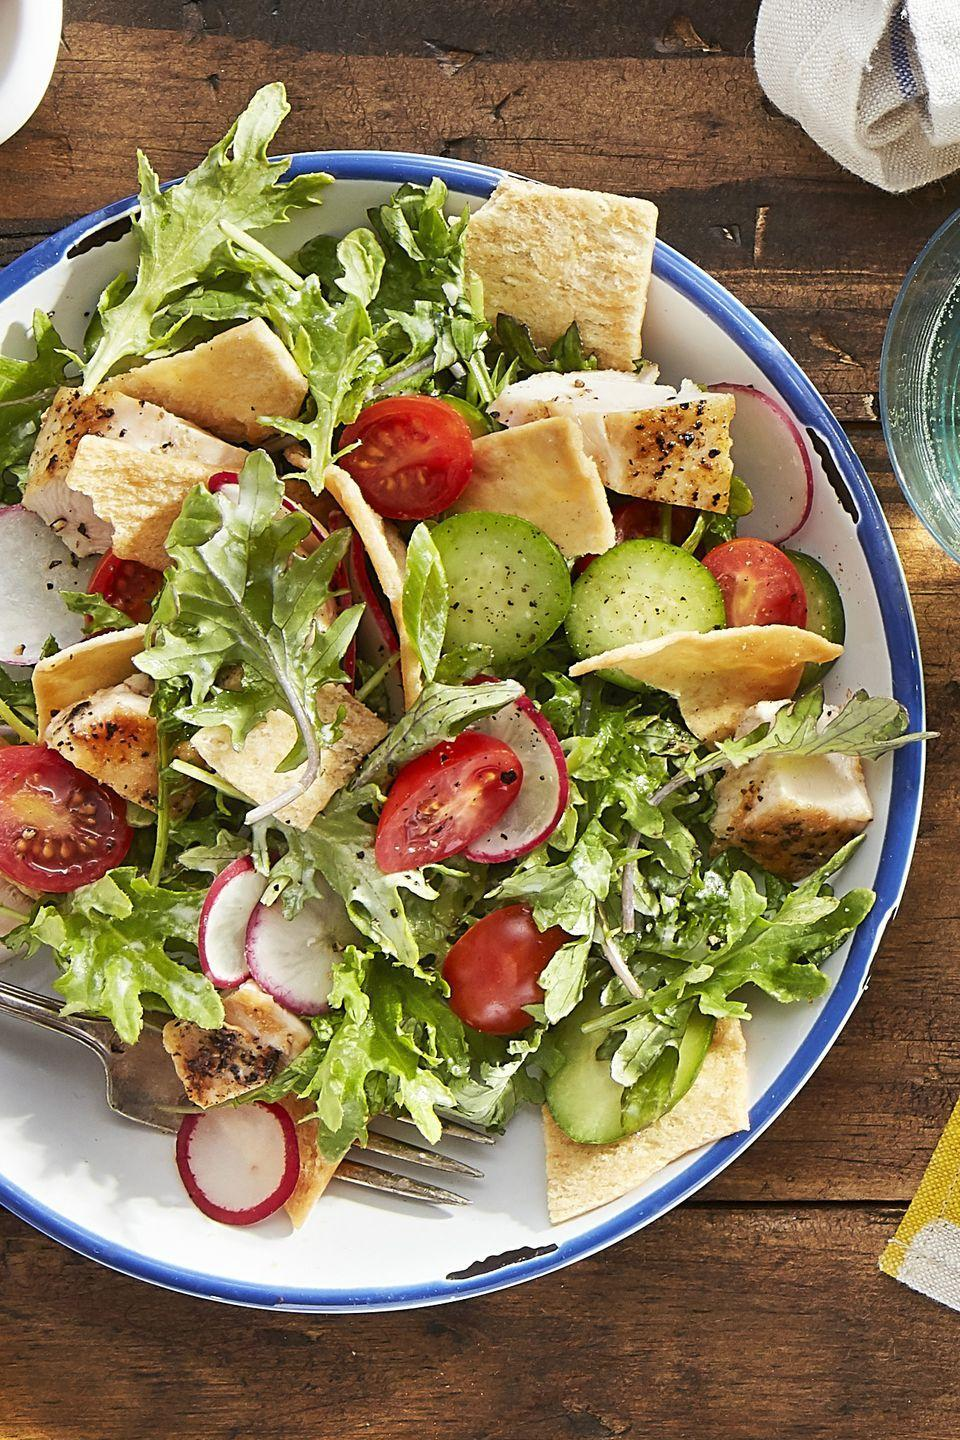 """<p>Cucumbers and radishes bring crunch <em>and </em>color to this baby kale salad.</p><p><strong><a href=""""https://www.countryliving.com/food-drinks/recipes/a44243/kale-chicken-pita-salad-recipe/"""" rel=""""nofollow noopener"""" target=""""_blank"""" data-ylk=""""slk:Get the recipe"""" class=""""link rapid-noclick-resp"""">Get the recipe</a>.</strong></p>"""